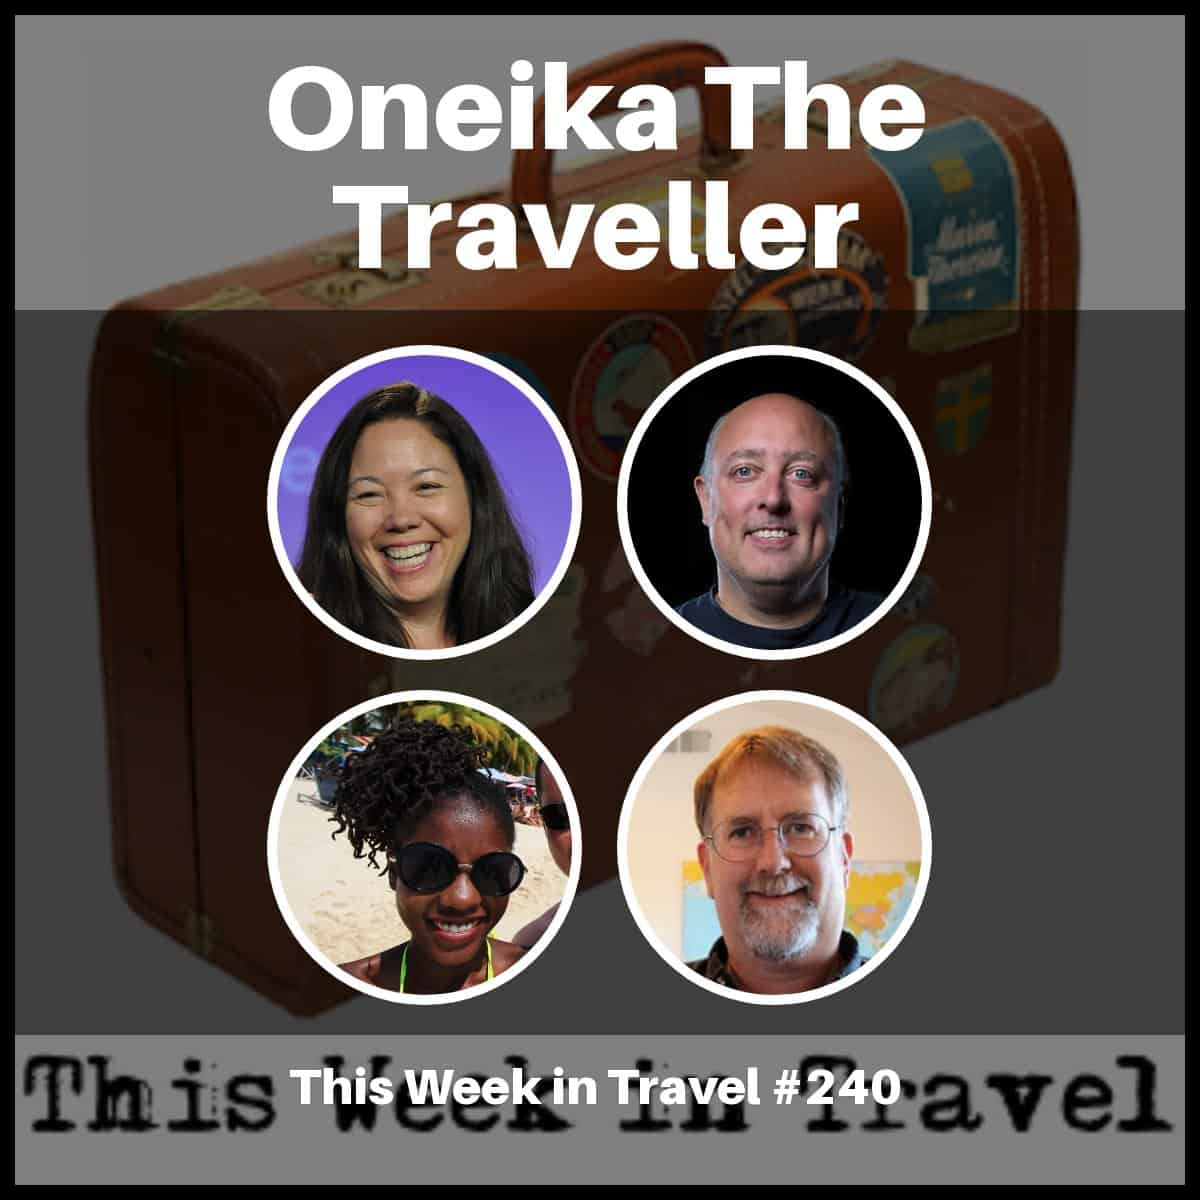 Oneika The Traveller – This Week in Travel #240